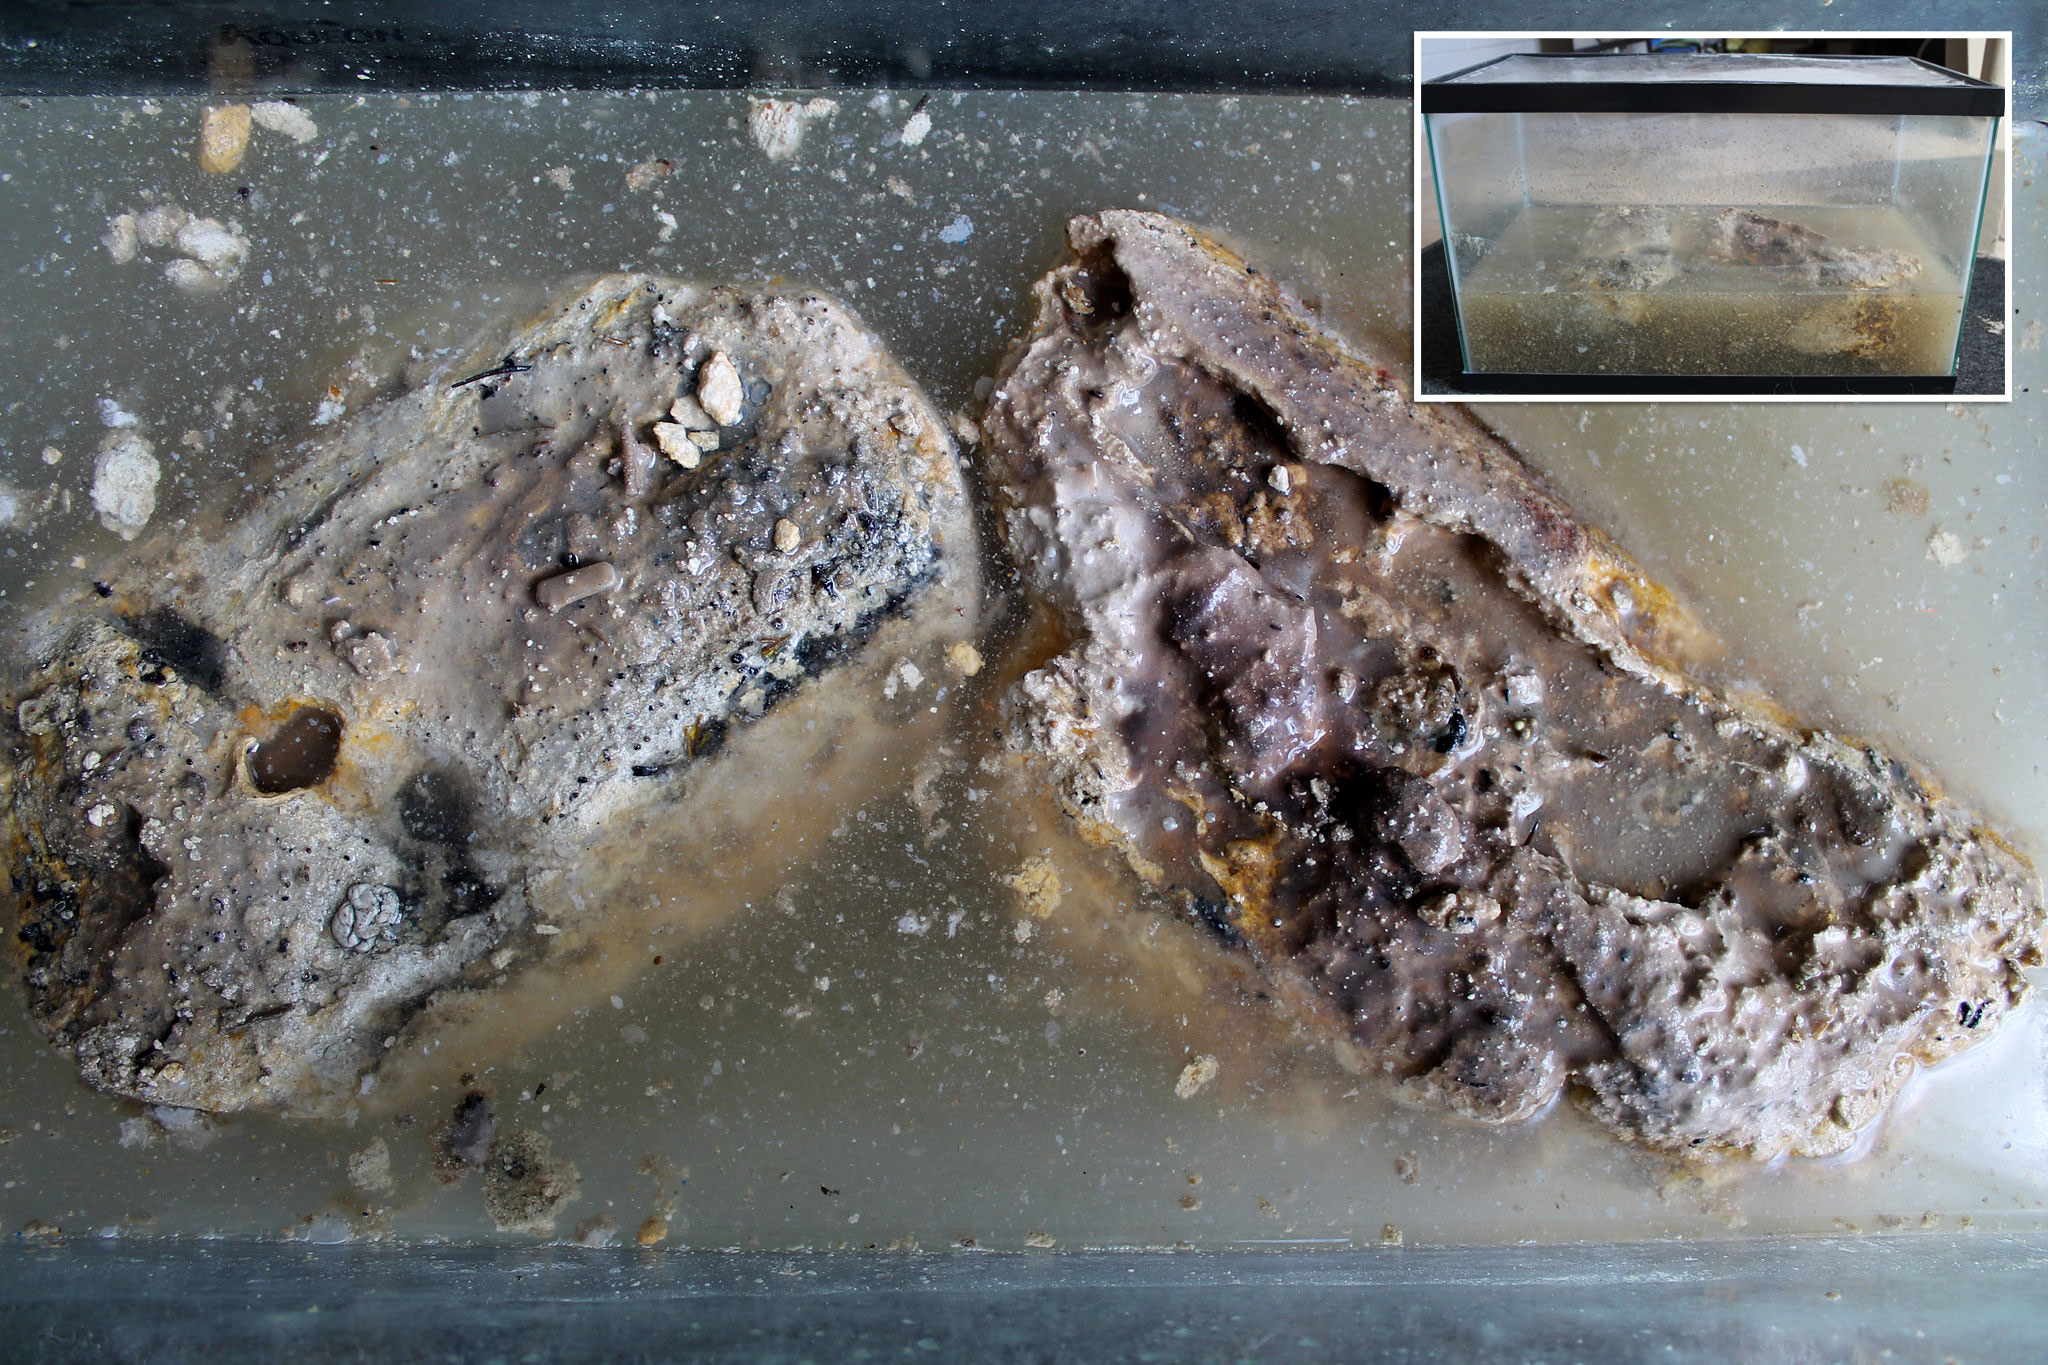 Stored and sealed in a fish tank, Barry uses this fatberg for outreach presentations. (Photo by Ruby Pajares)